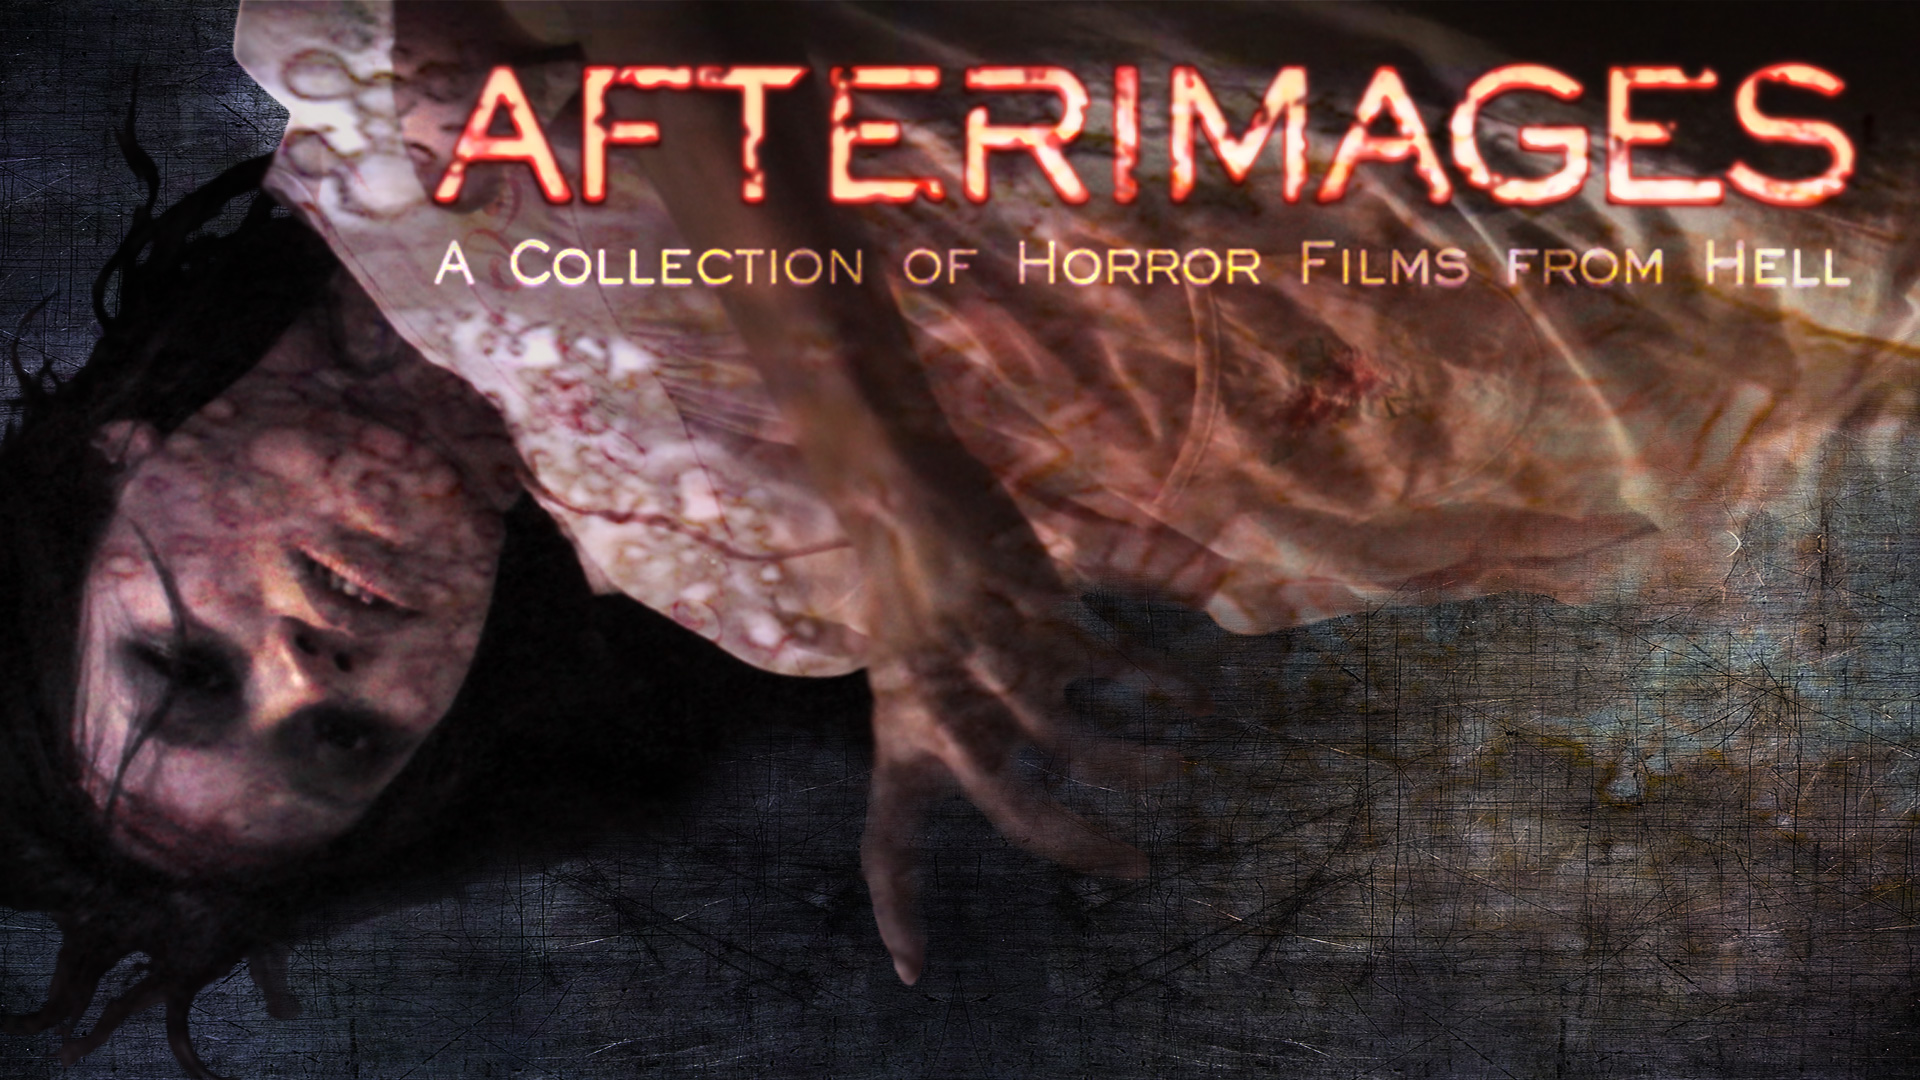 Afterimages (Horror)